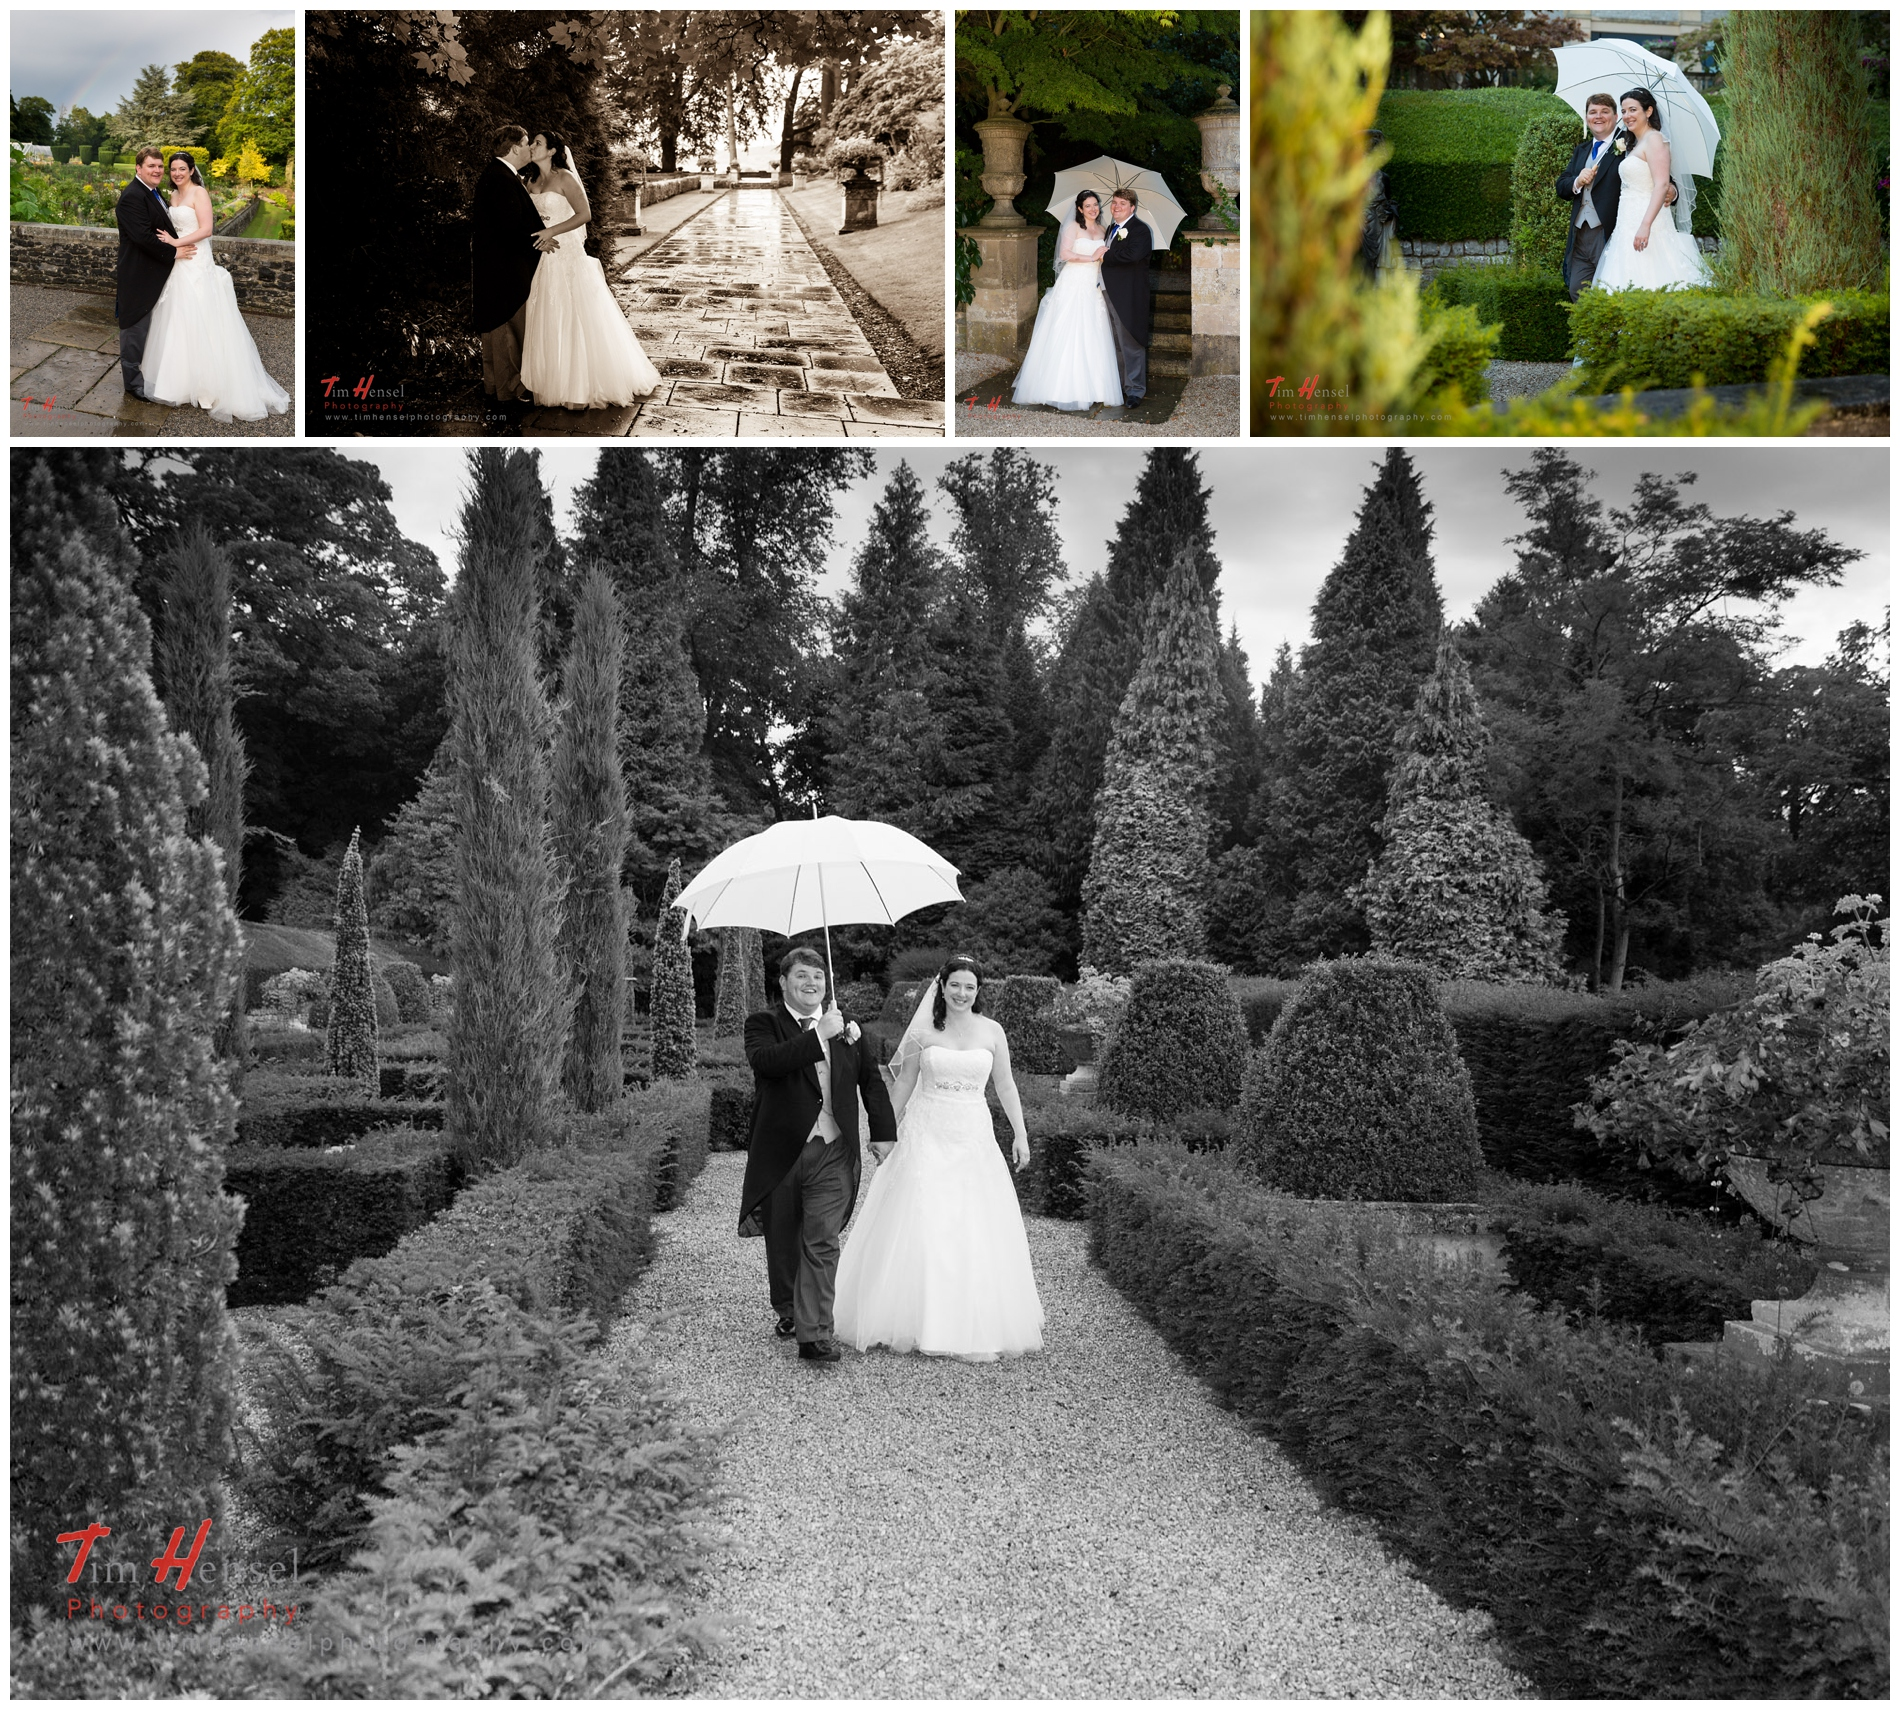 Wedding photography during a walk through the gardens at thornbridge hall